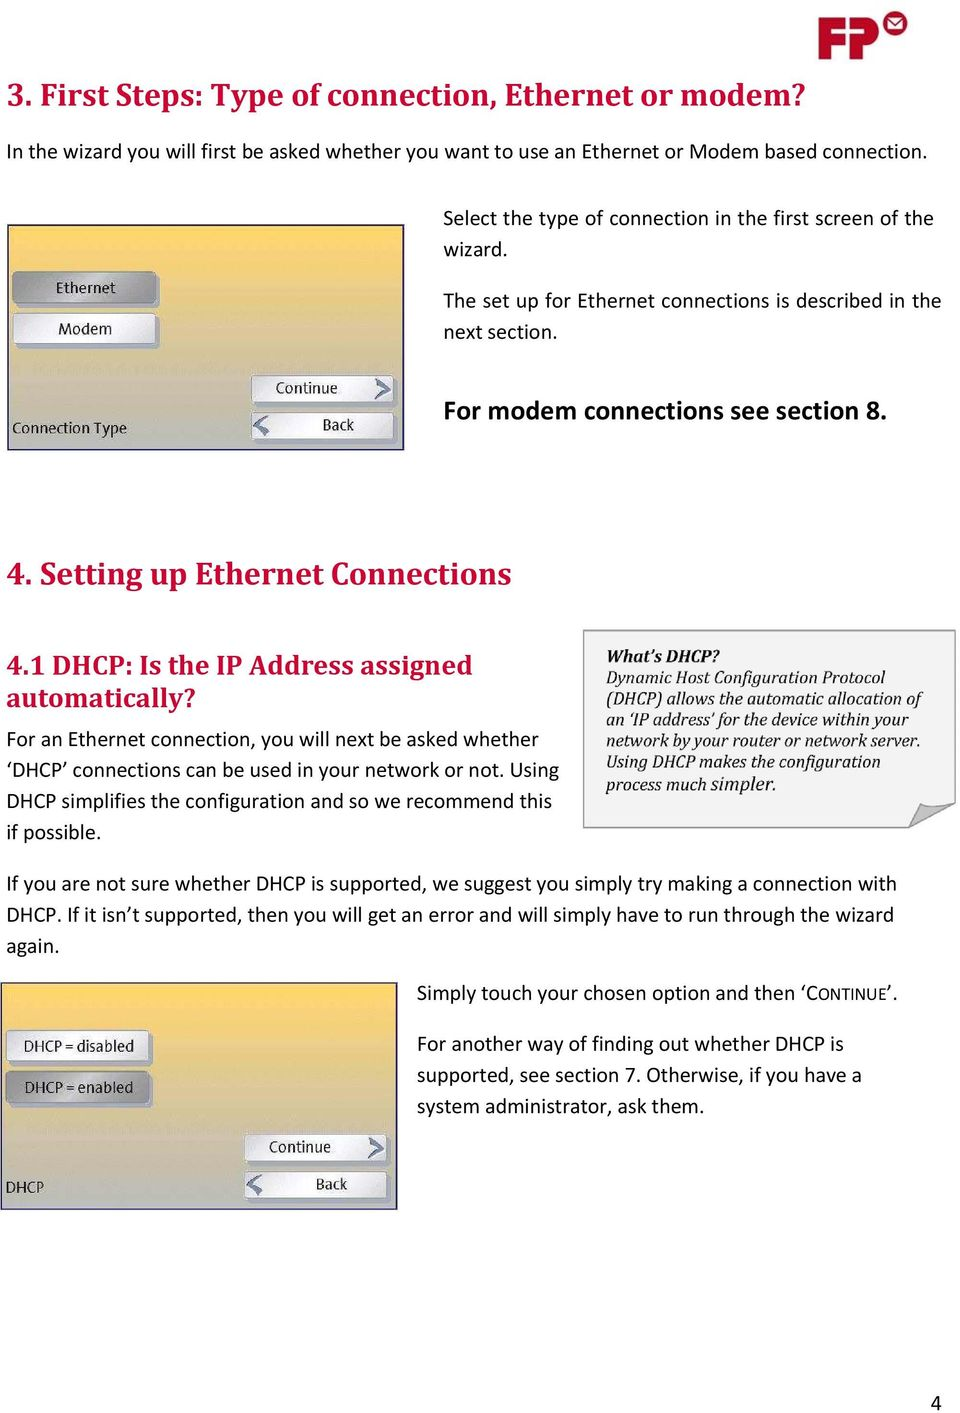 Setting up Ethernet Connections 4.1 DHCP: Is the IP Address assigned automatically? For an Ethernet connection, you will next be asked whether DHCP connections can be used in your network or not.